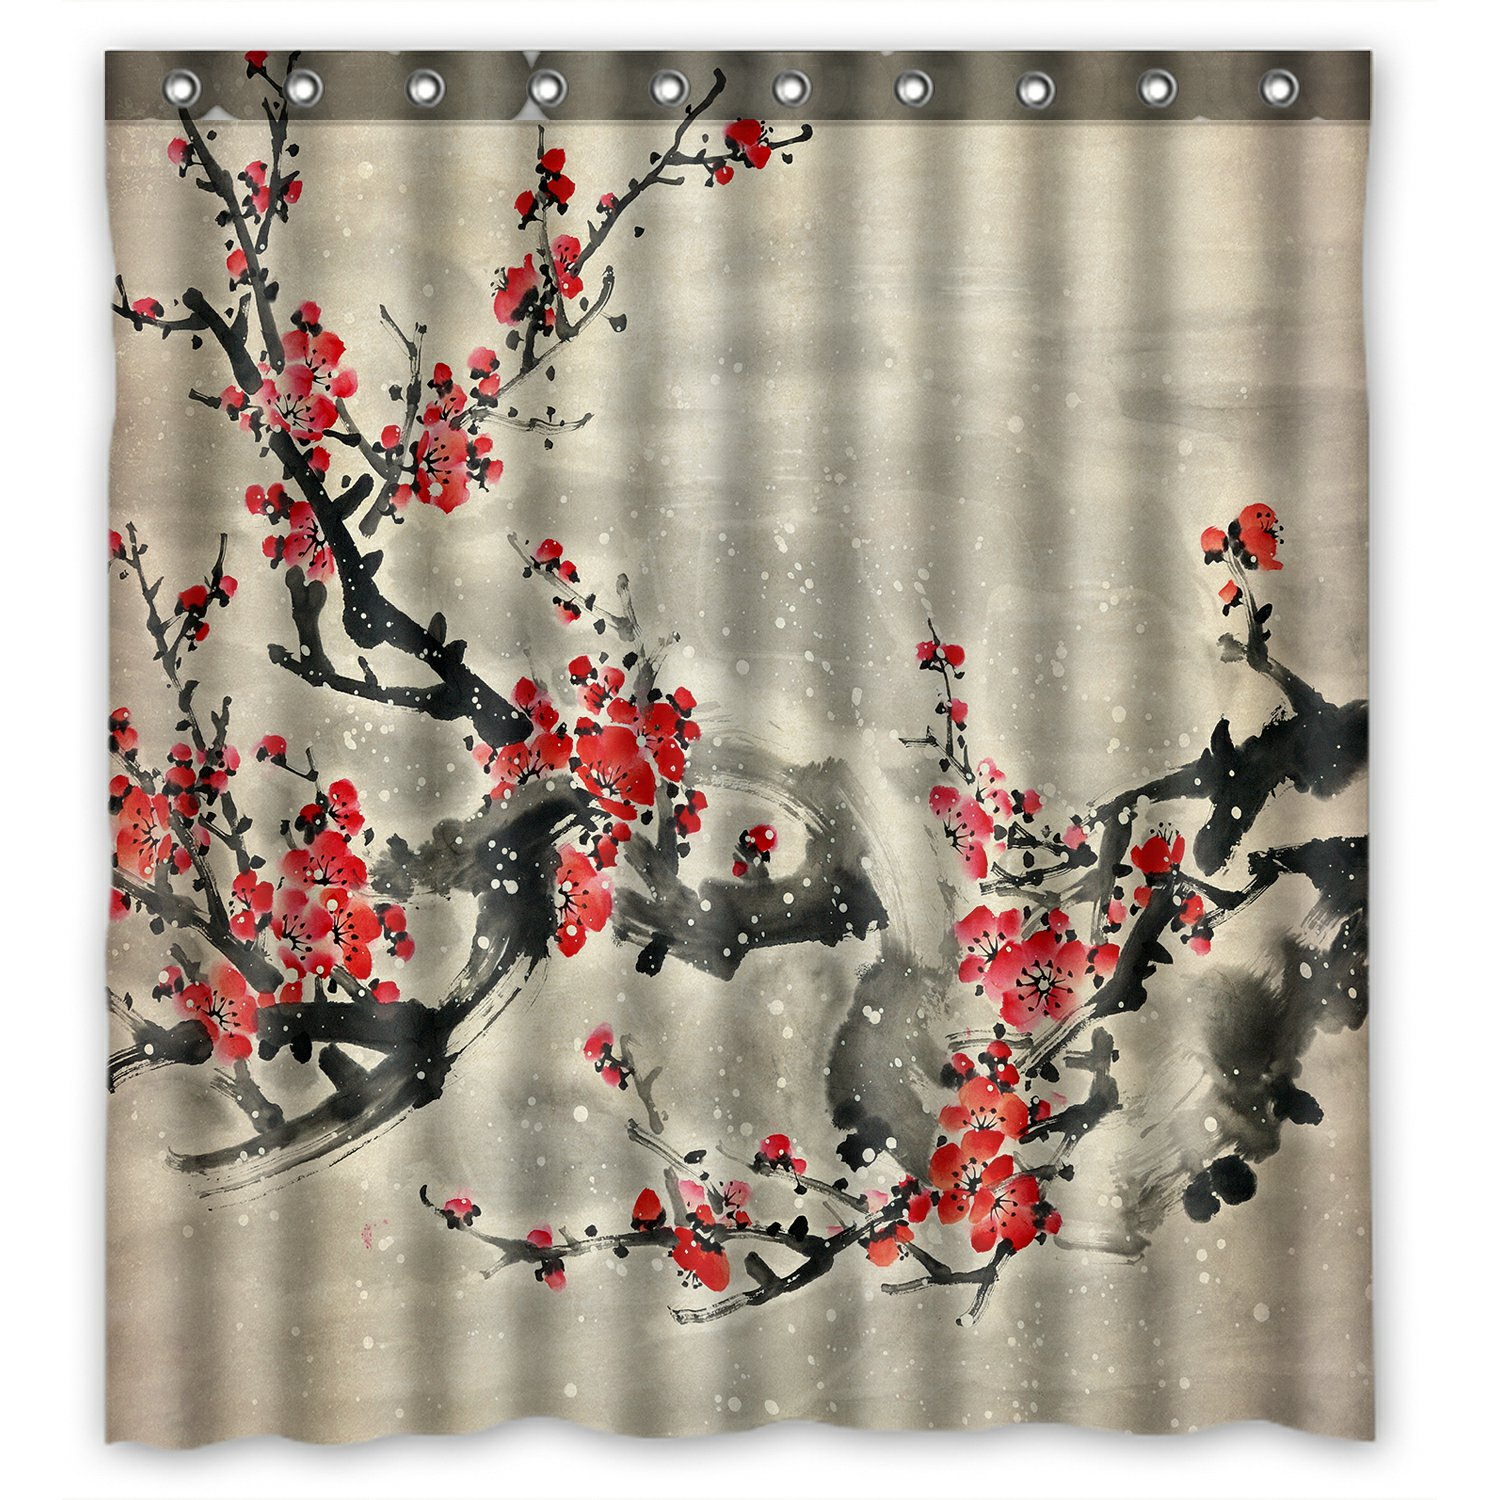 phfzk asian shower curtain plum blossom traditional chinese painting polyester fabric bathroom shower curtain 66x72 inches walmart com